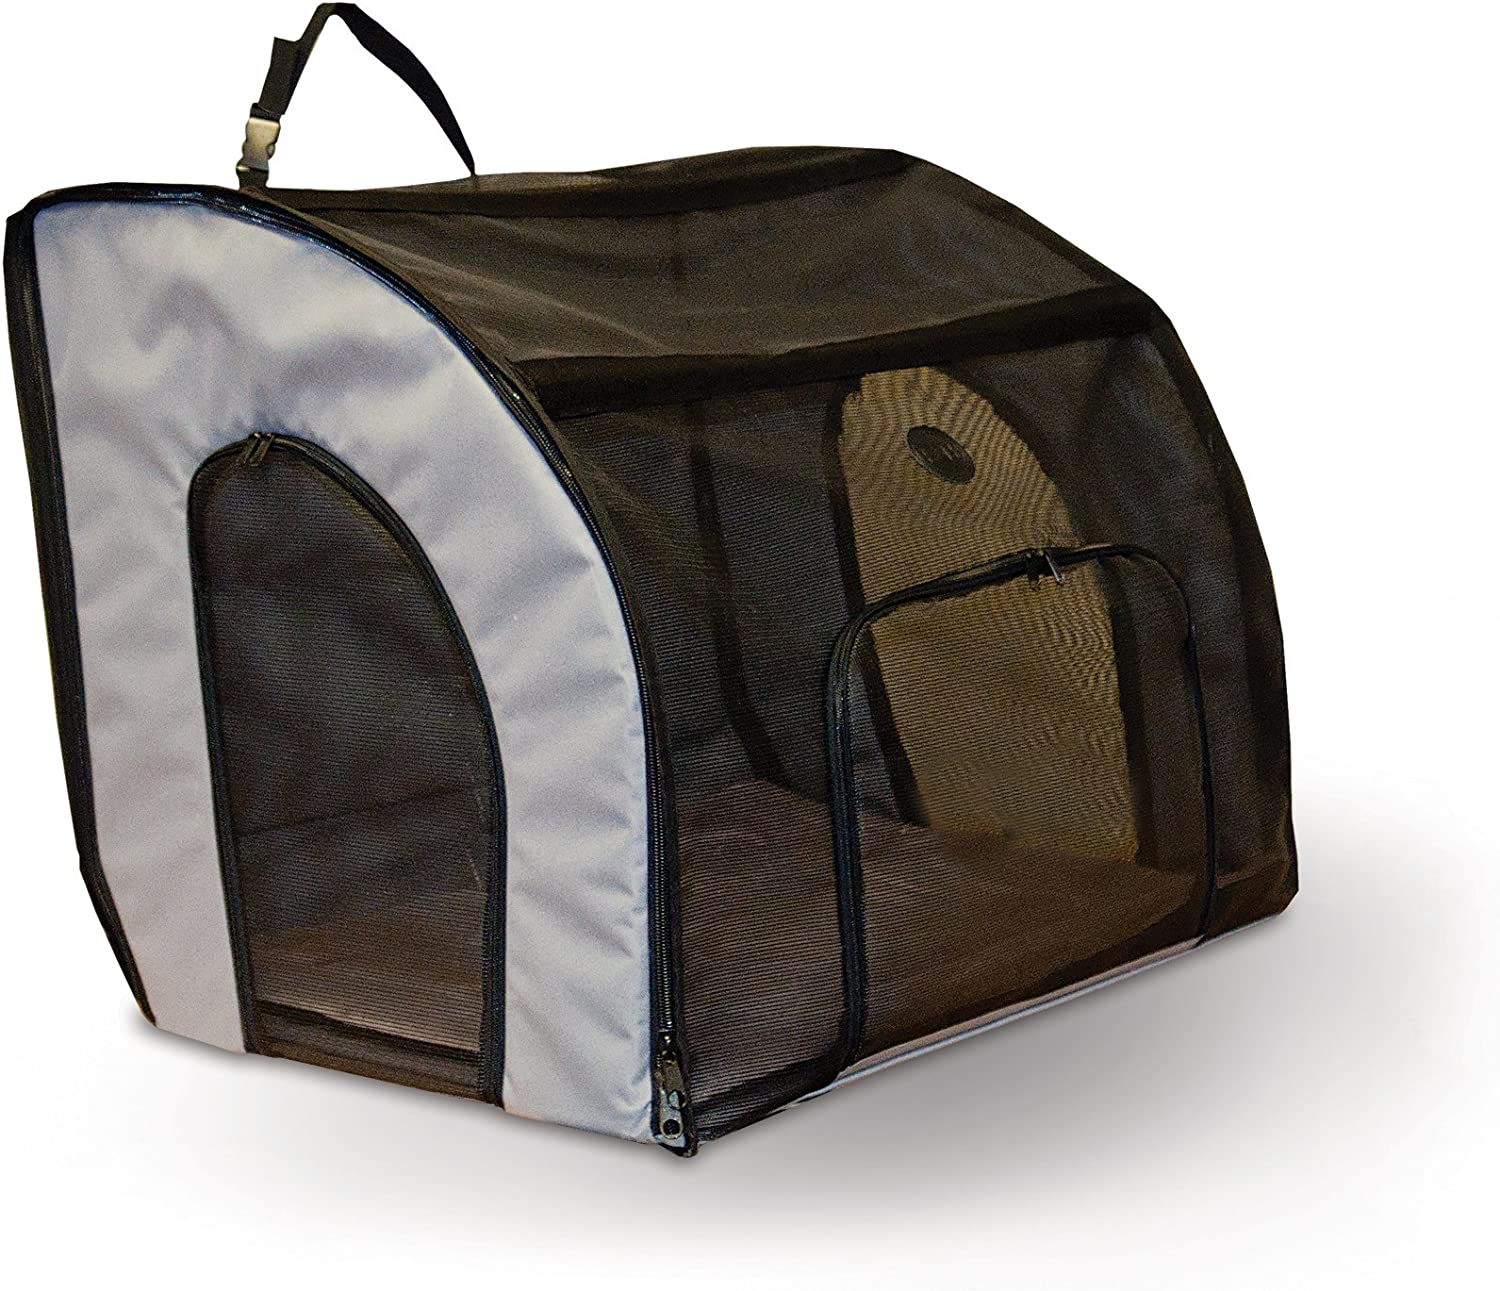 """K&H Pet Products Travel Safety Pet Carrier Small Gray 17"""" x 16"""" x 15"""" : Pet Carriers : Pet Supplies"""